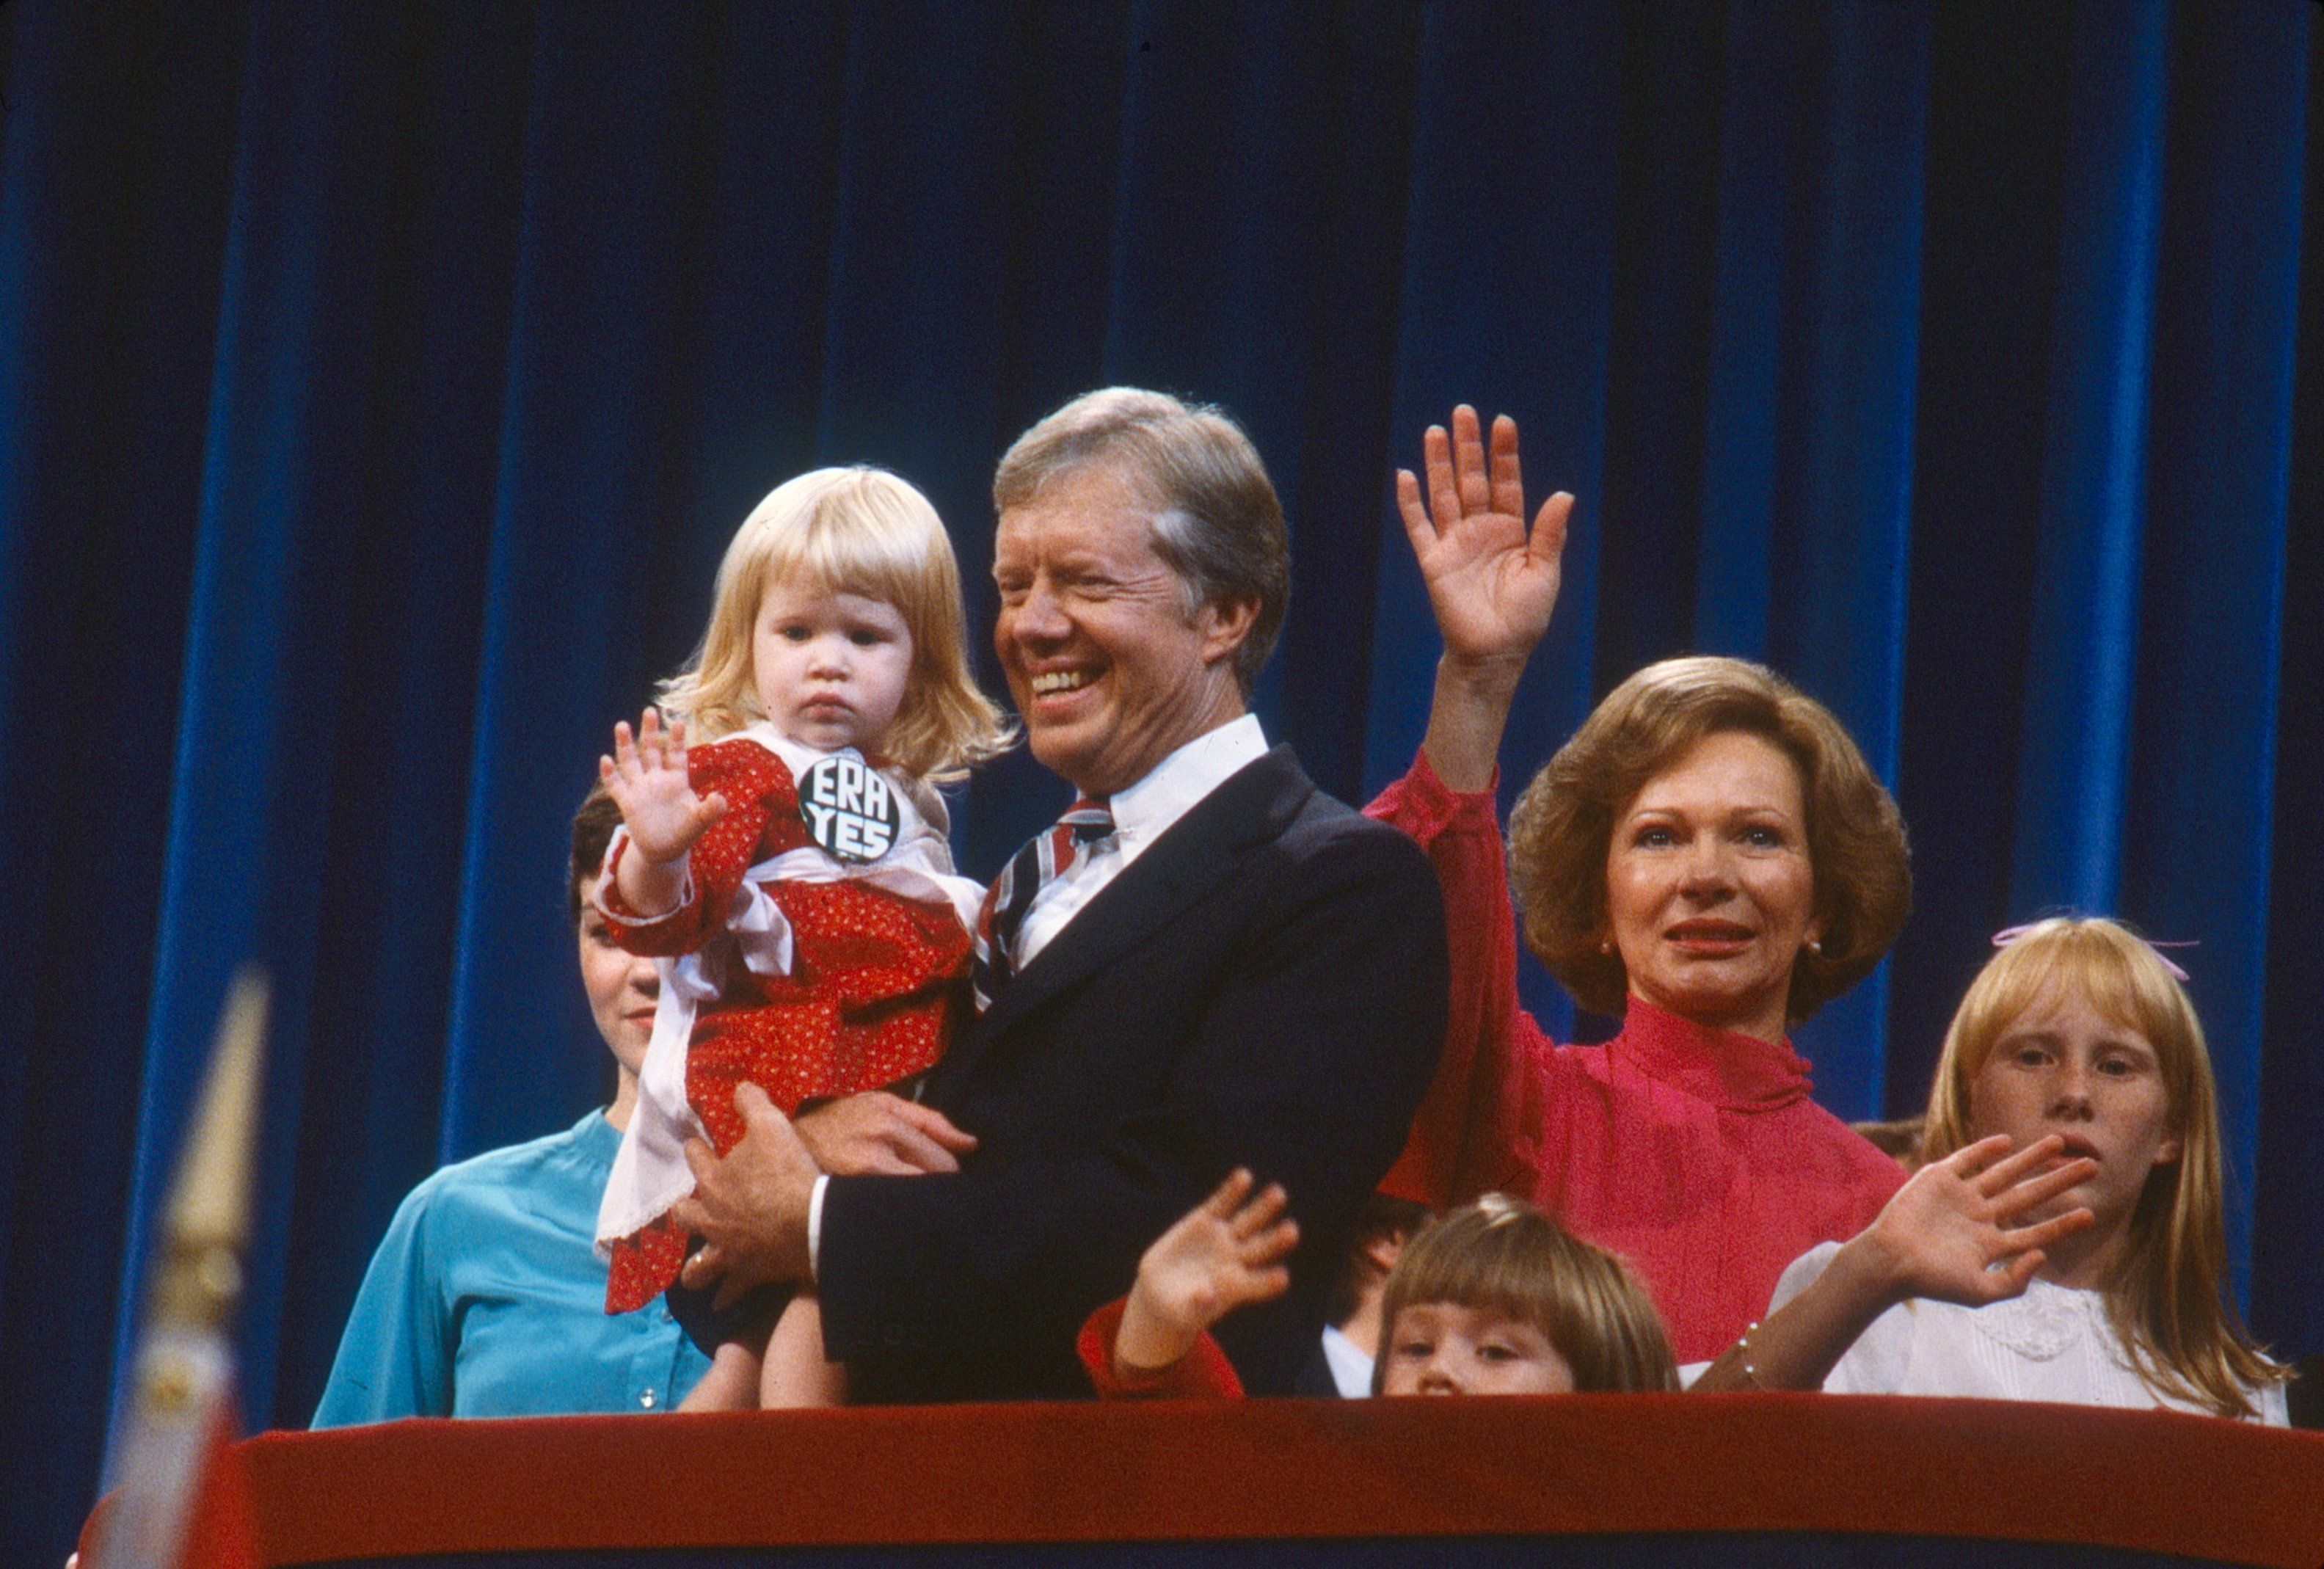 President Jimmy Carter, holding his grand-daughter Sarah Carter, First Lady Rosalynn Carter (in red), and their daughter, Amy Carter during the 1980 National Democratic Convention held at Madison Square Garden, New York, New York, August 11-14, 1980.  Source: Getty Images